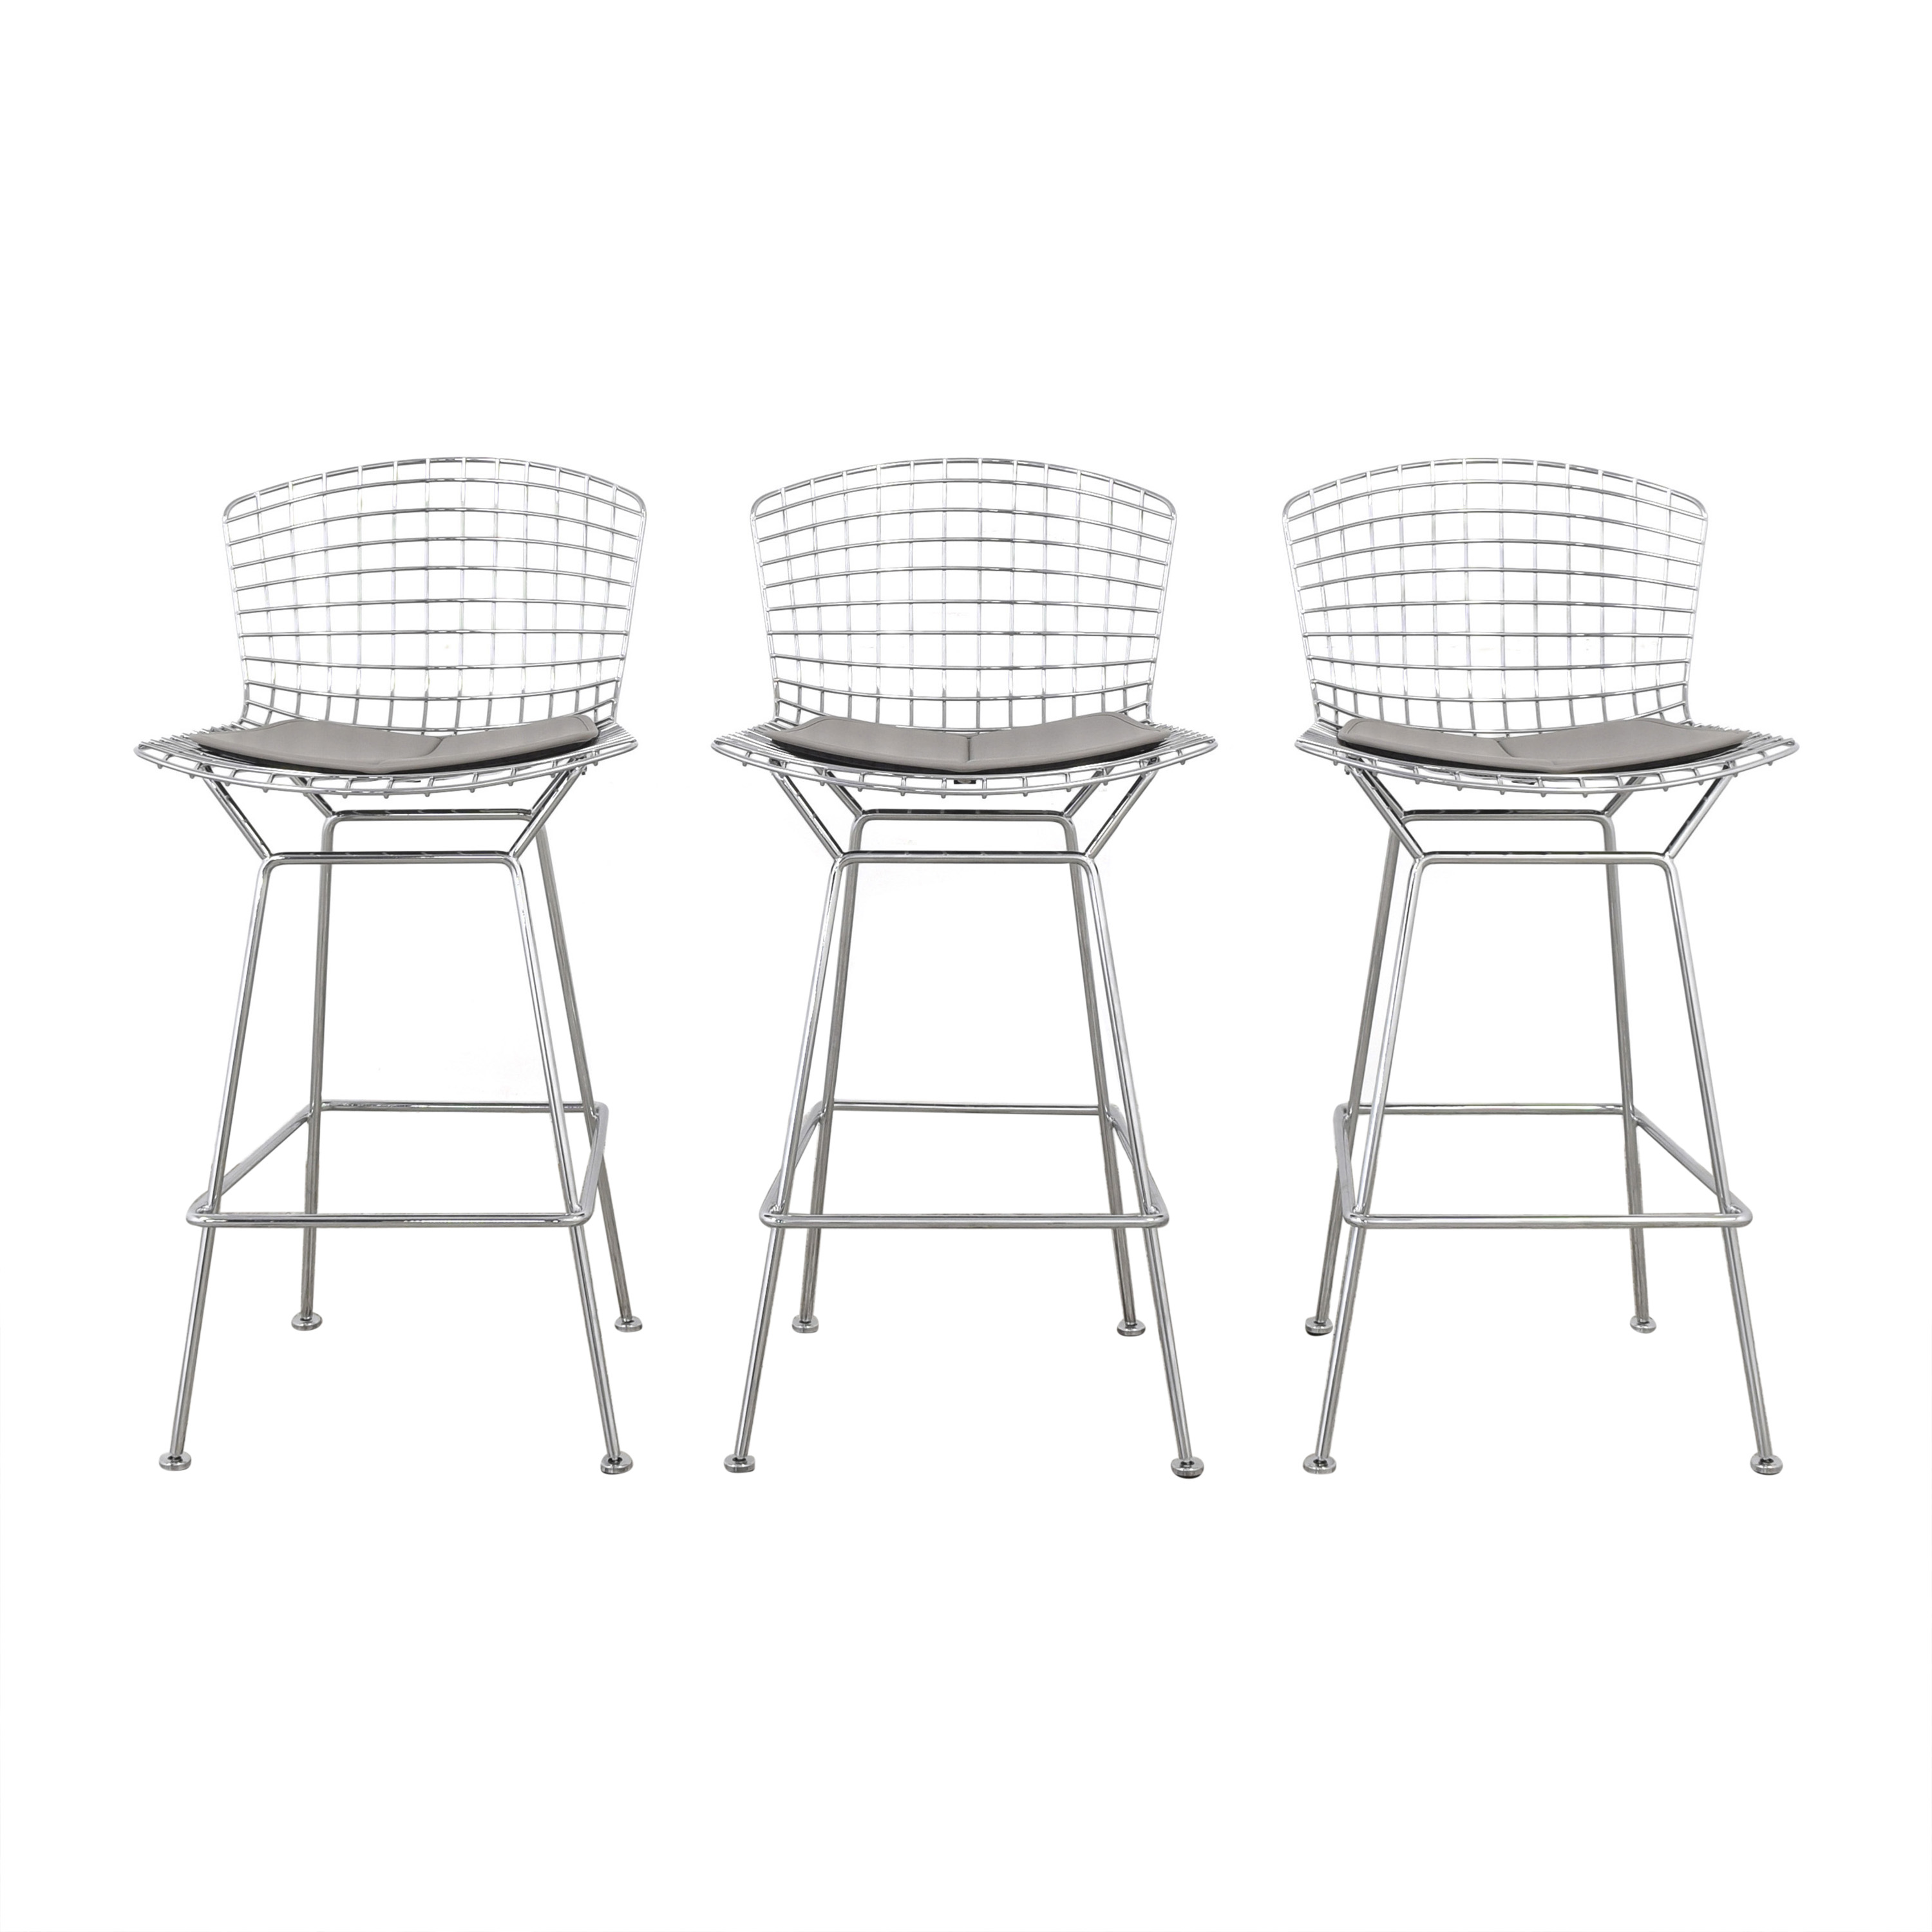 Knoll Knoll Bertoia Stools with Seat Cushions coupon